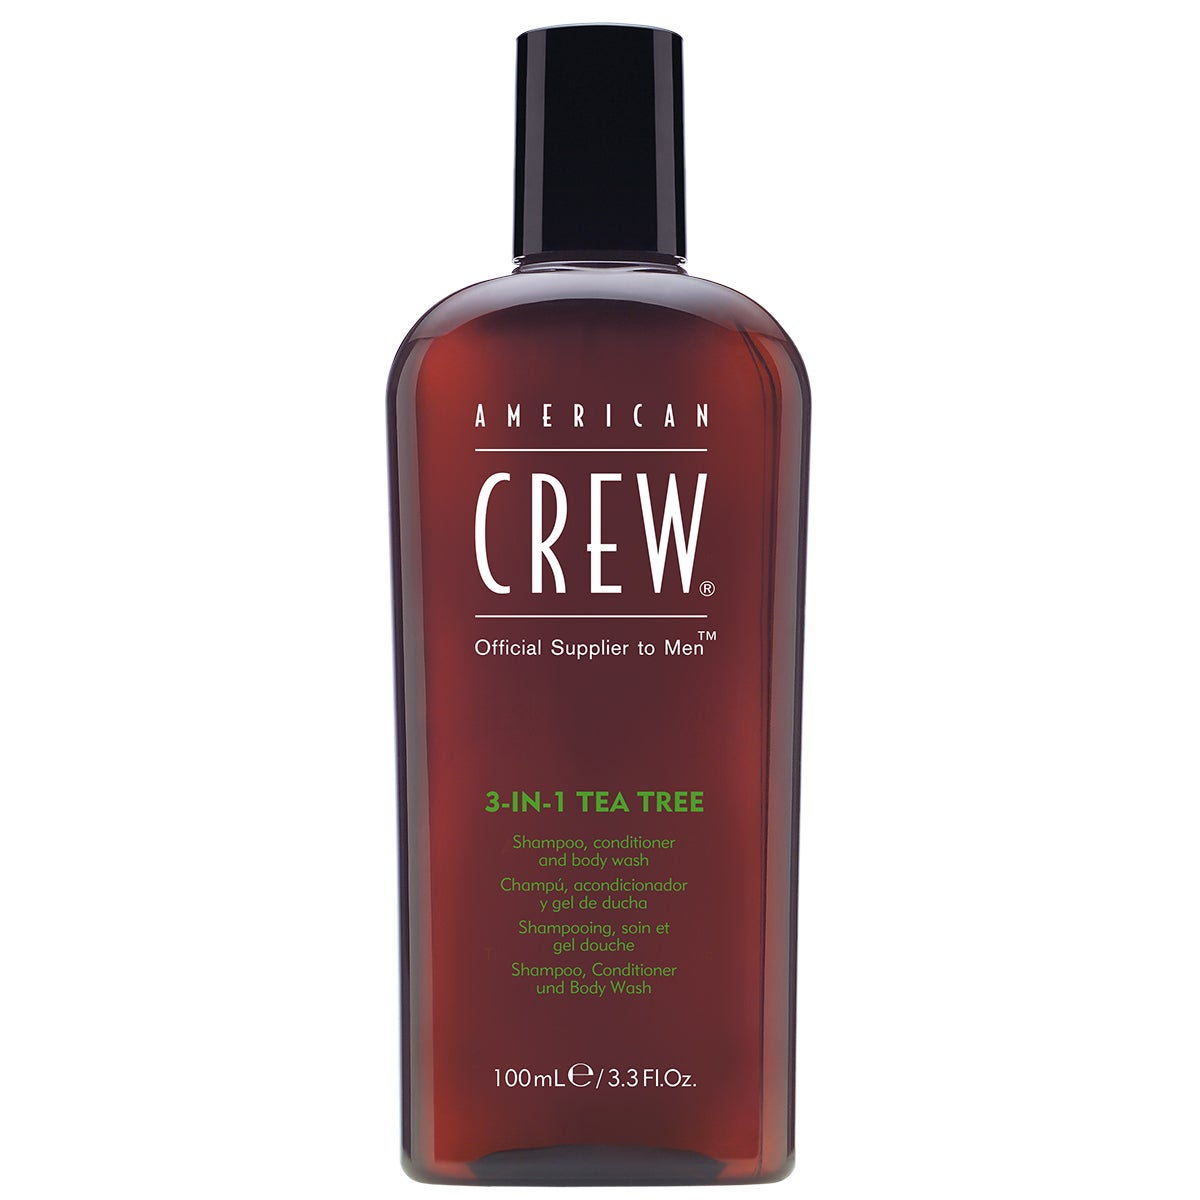 American Crew 3-in-1 Tea Tree, 450 ml American Crew Shampoo